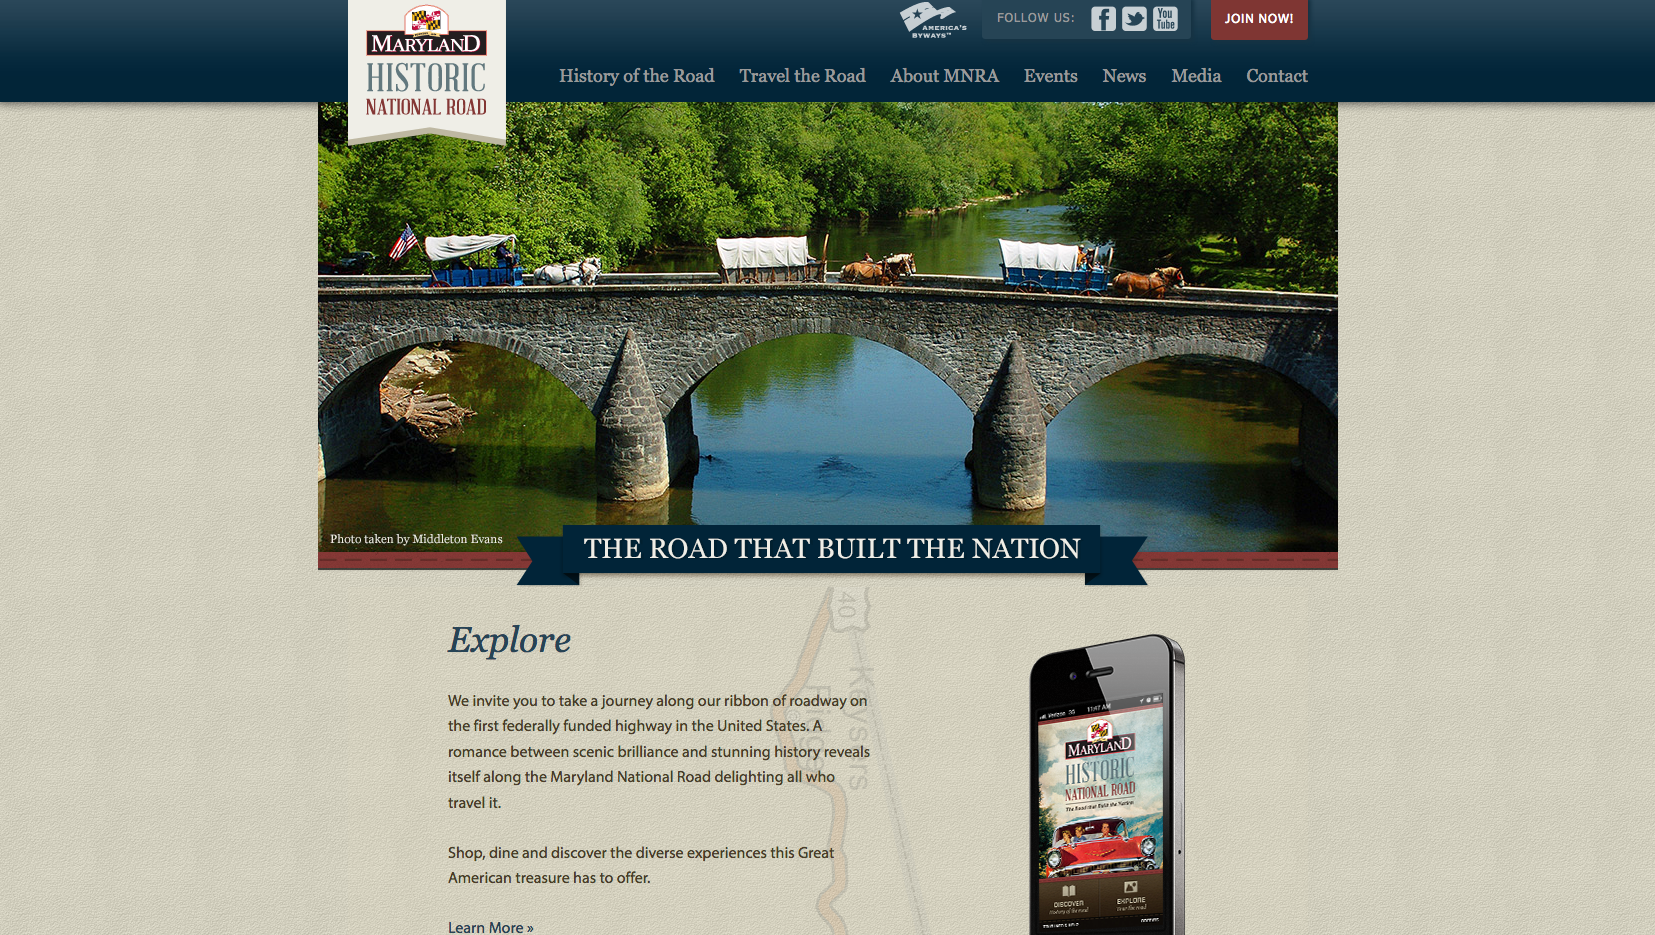 Maryland National Road Association